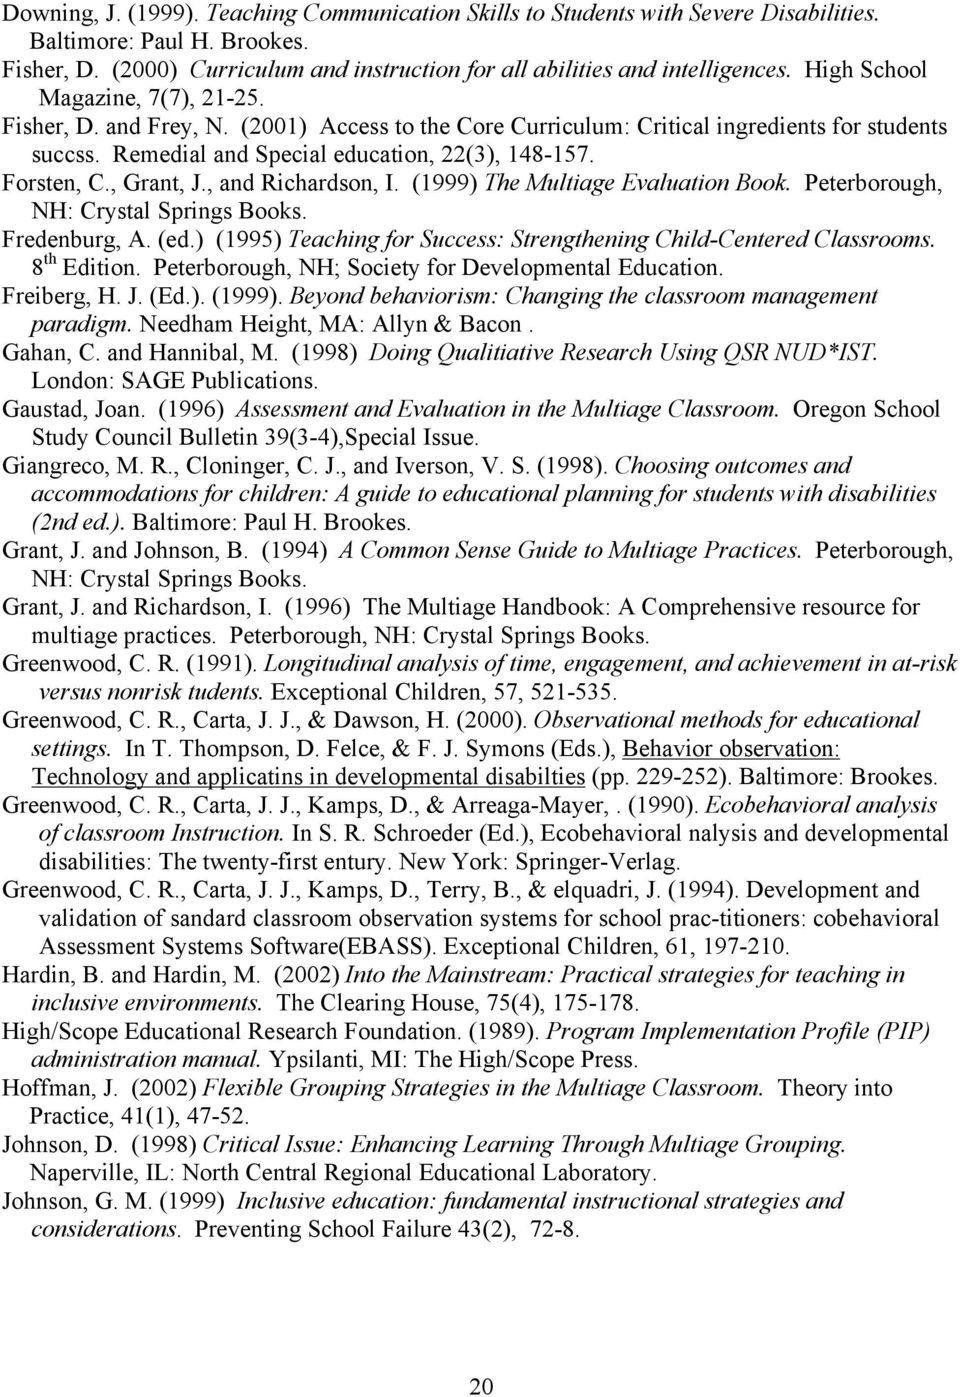 , Grant, J., and Richardson, I. (1999) The Multiage Evaluation Book. Peterborough, NH: Crystal Springs Books. Fredenburg, A. (ed.) (1995) Teaching for Success: Strengthening Child-Centered Classrooms.